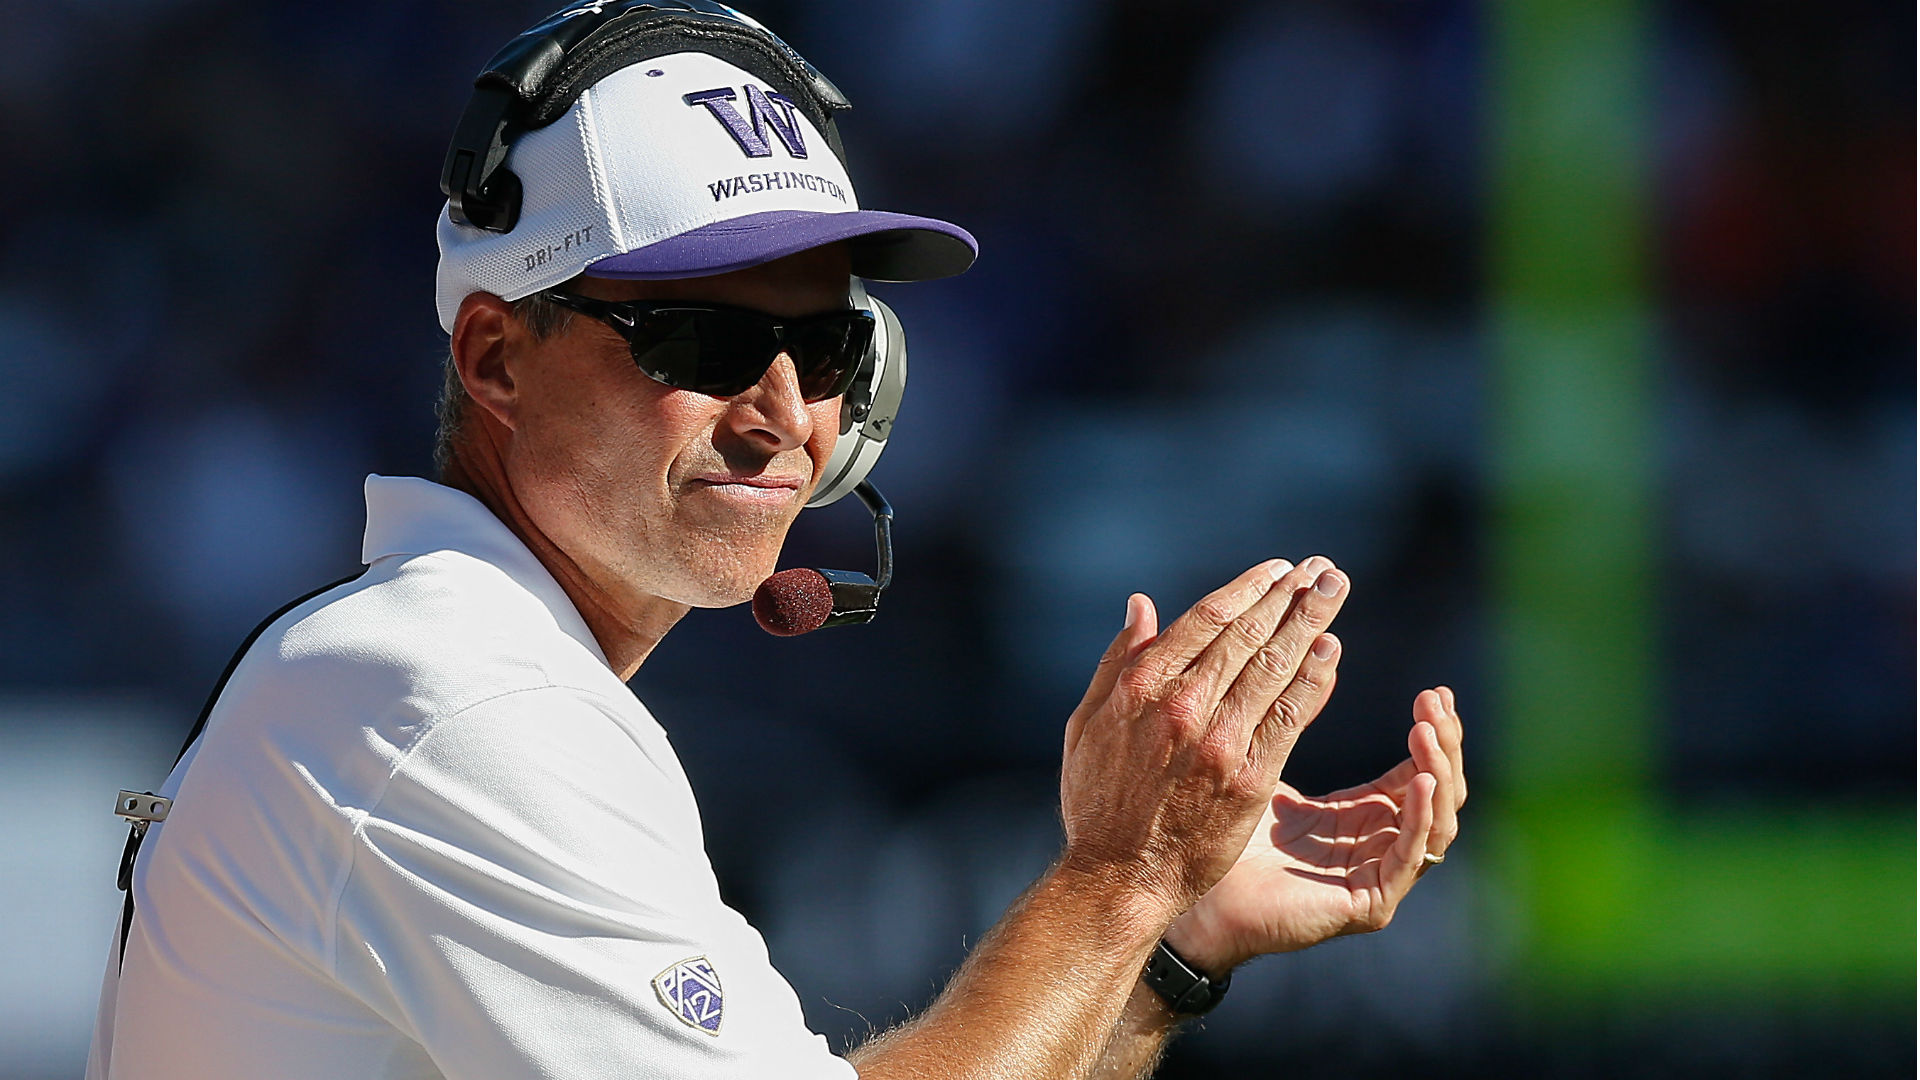 Oklahoma State vs. Washington betting lines and pick – Petersen hopes to bring Huskies postseason success in Cactus Bowl